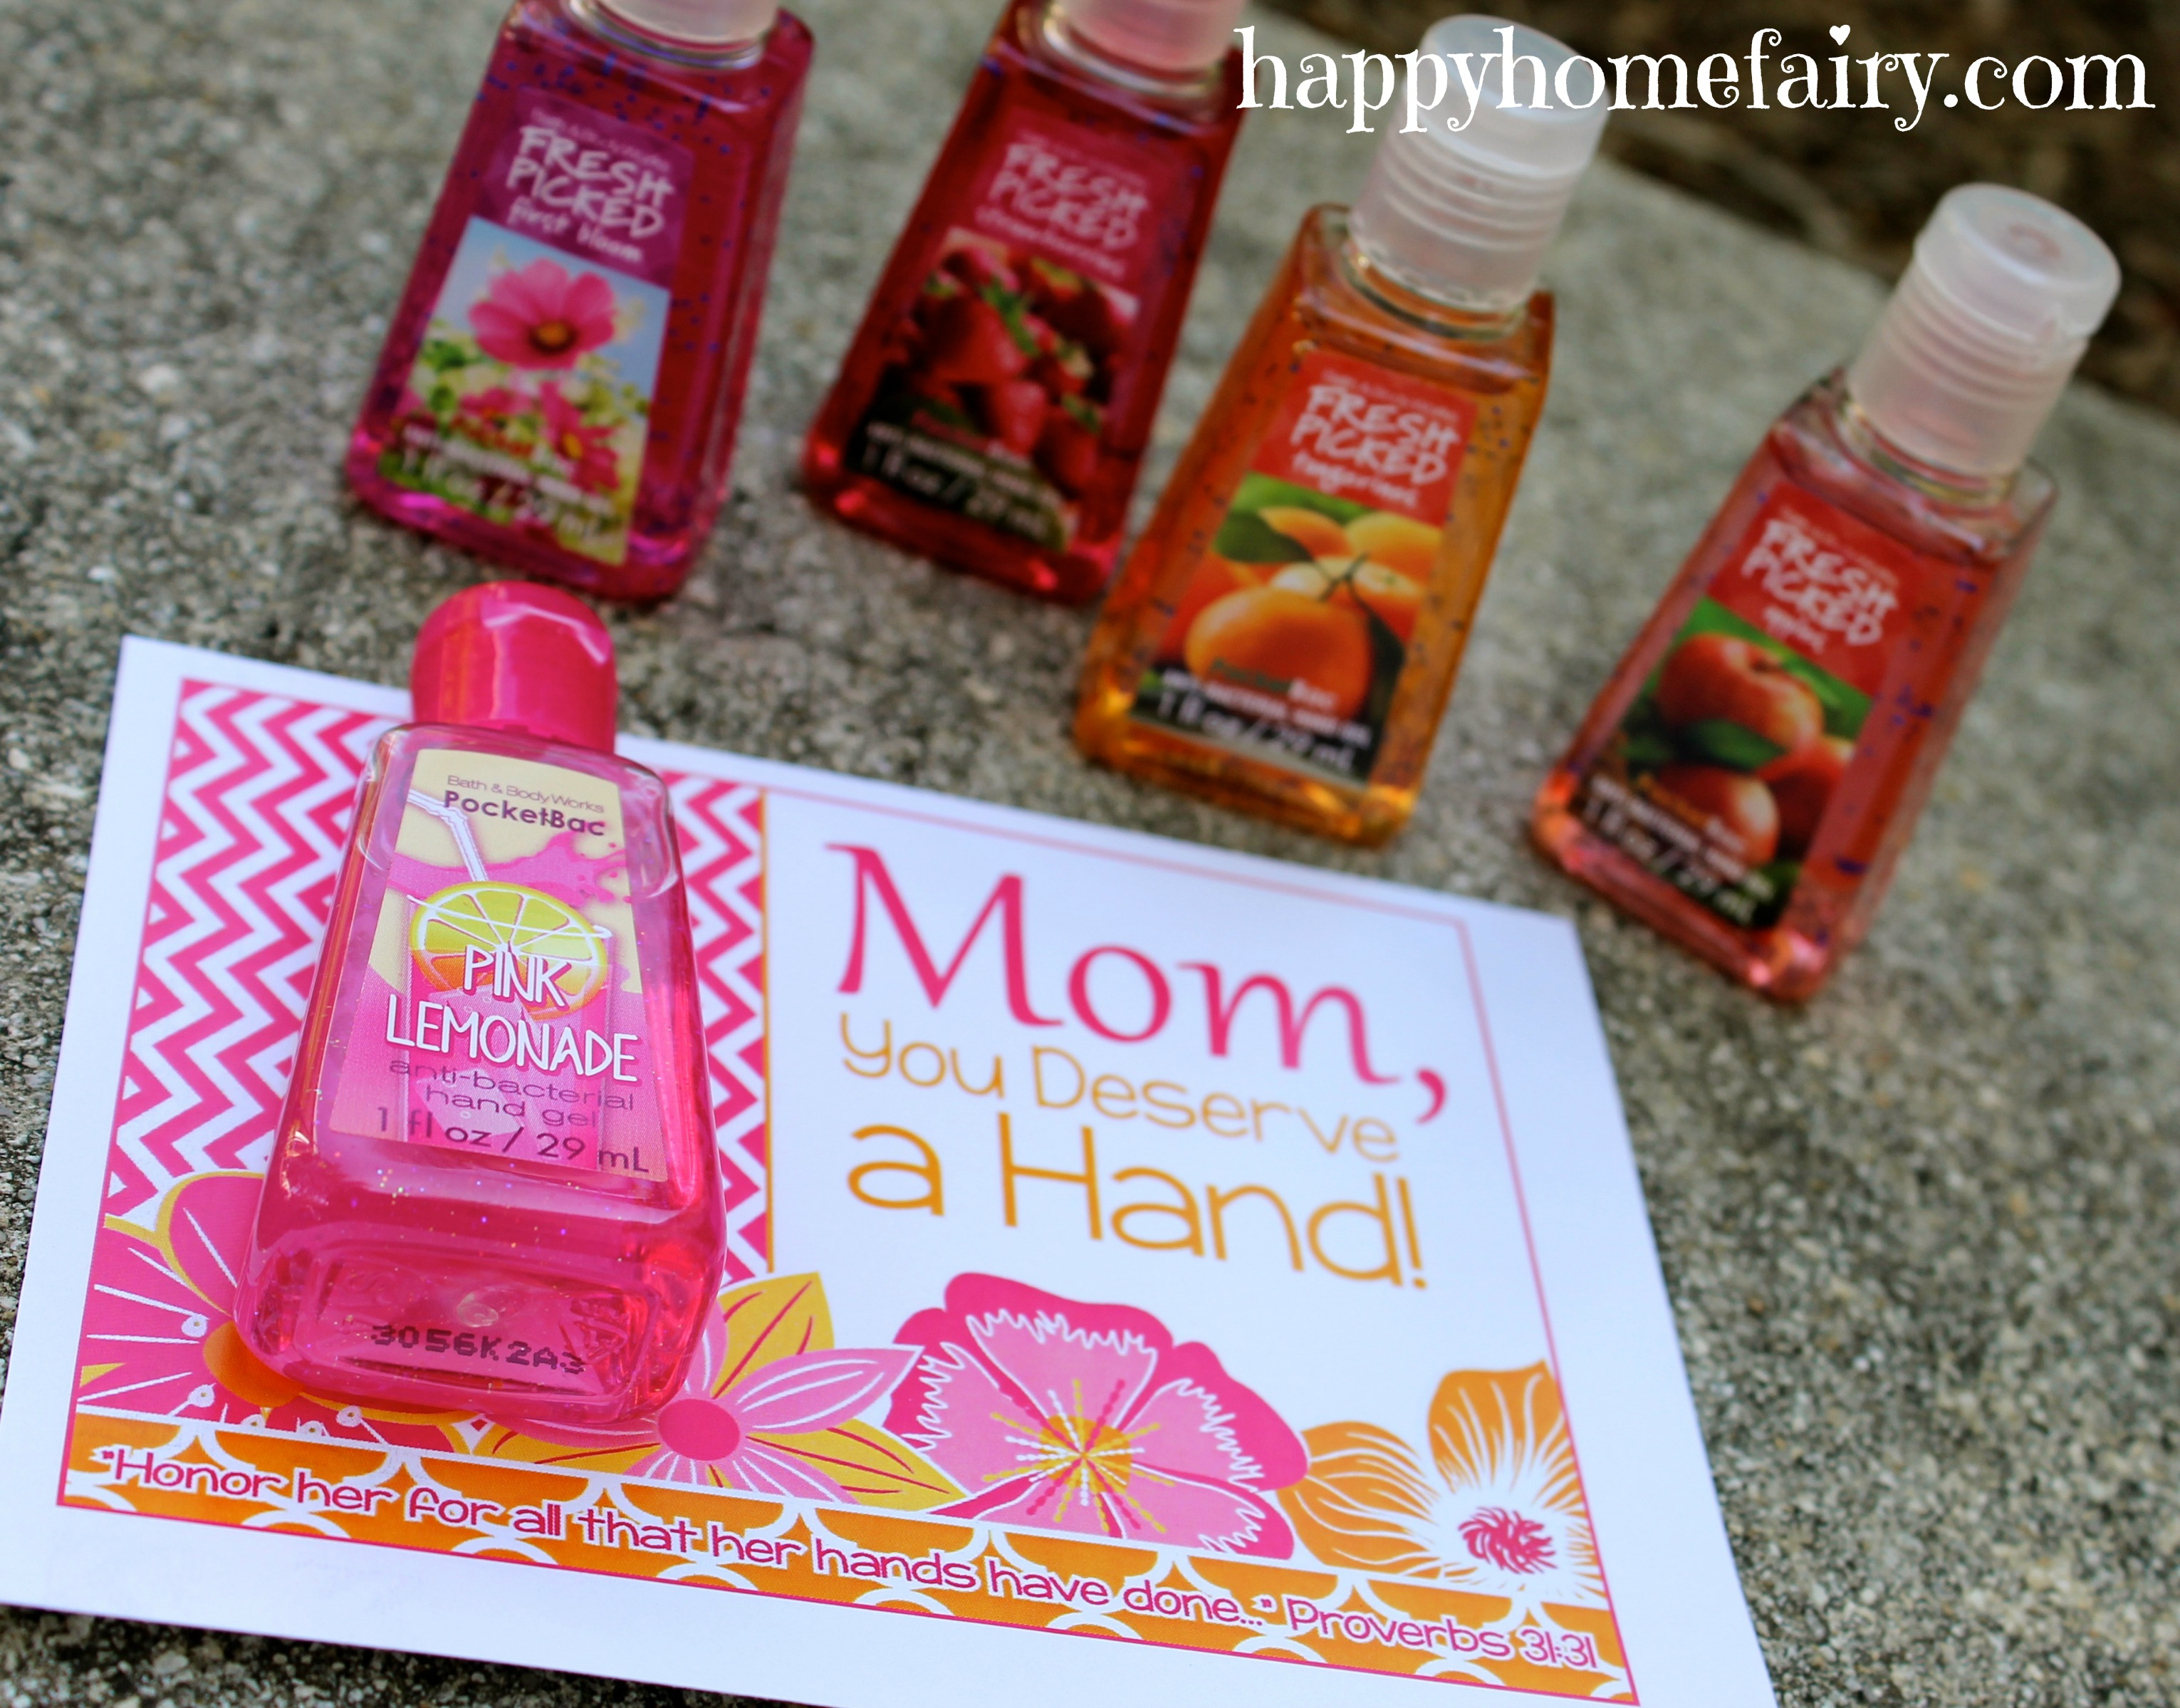 2013 Bath Printable Body Works And